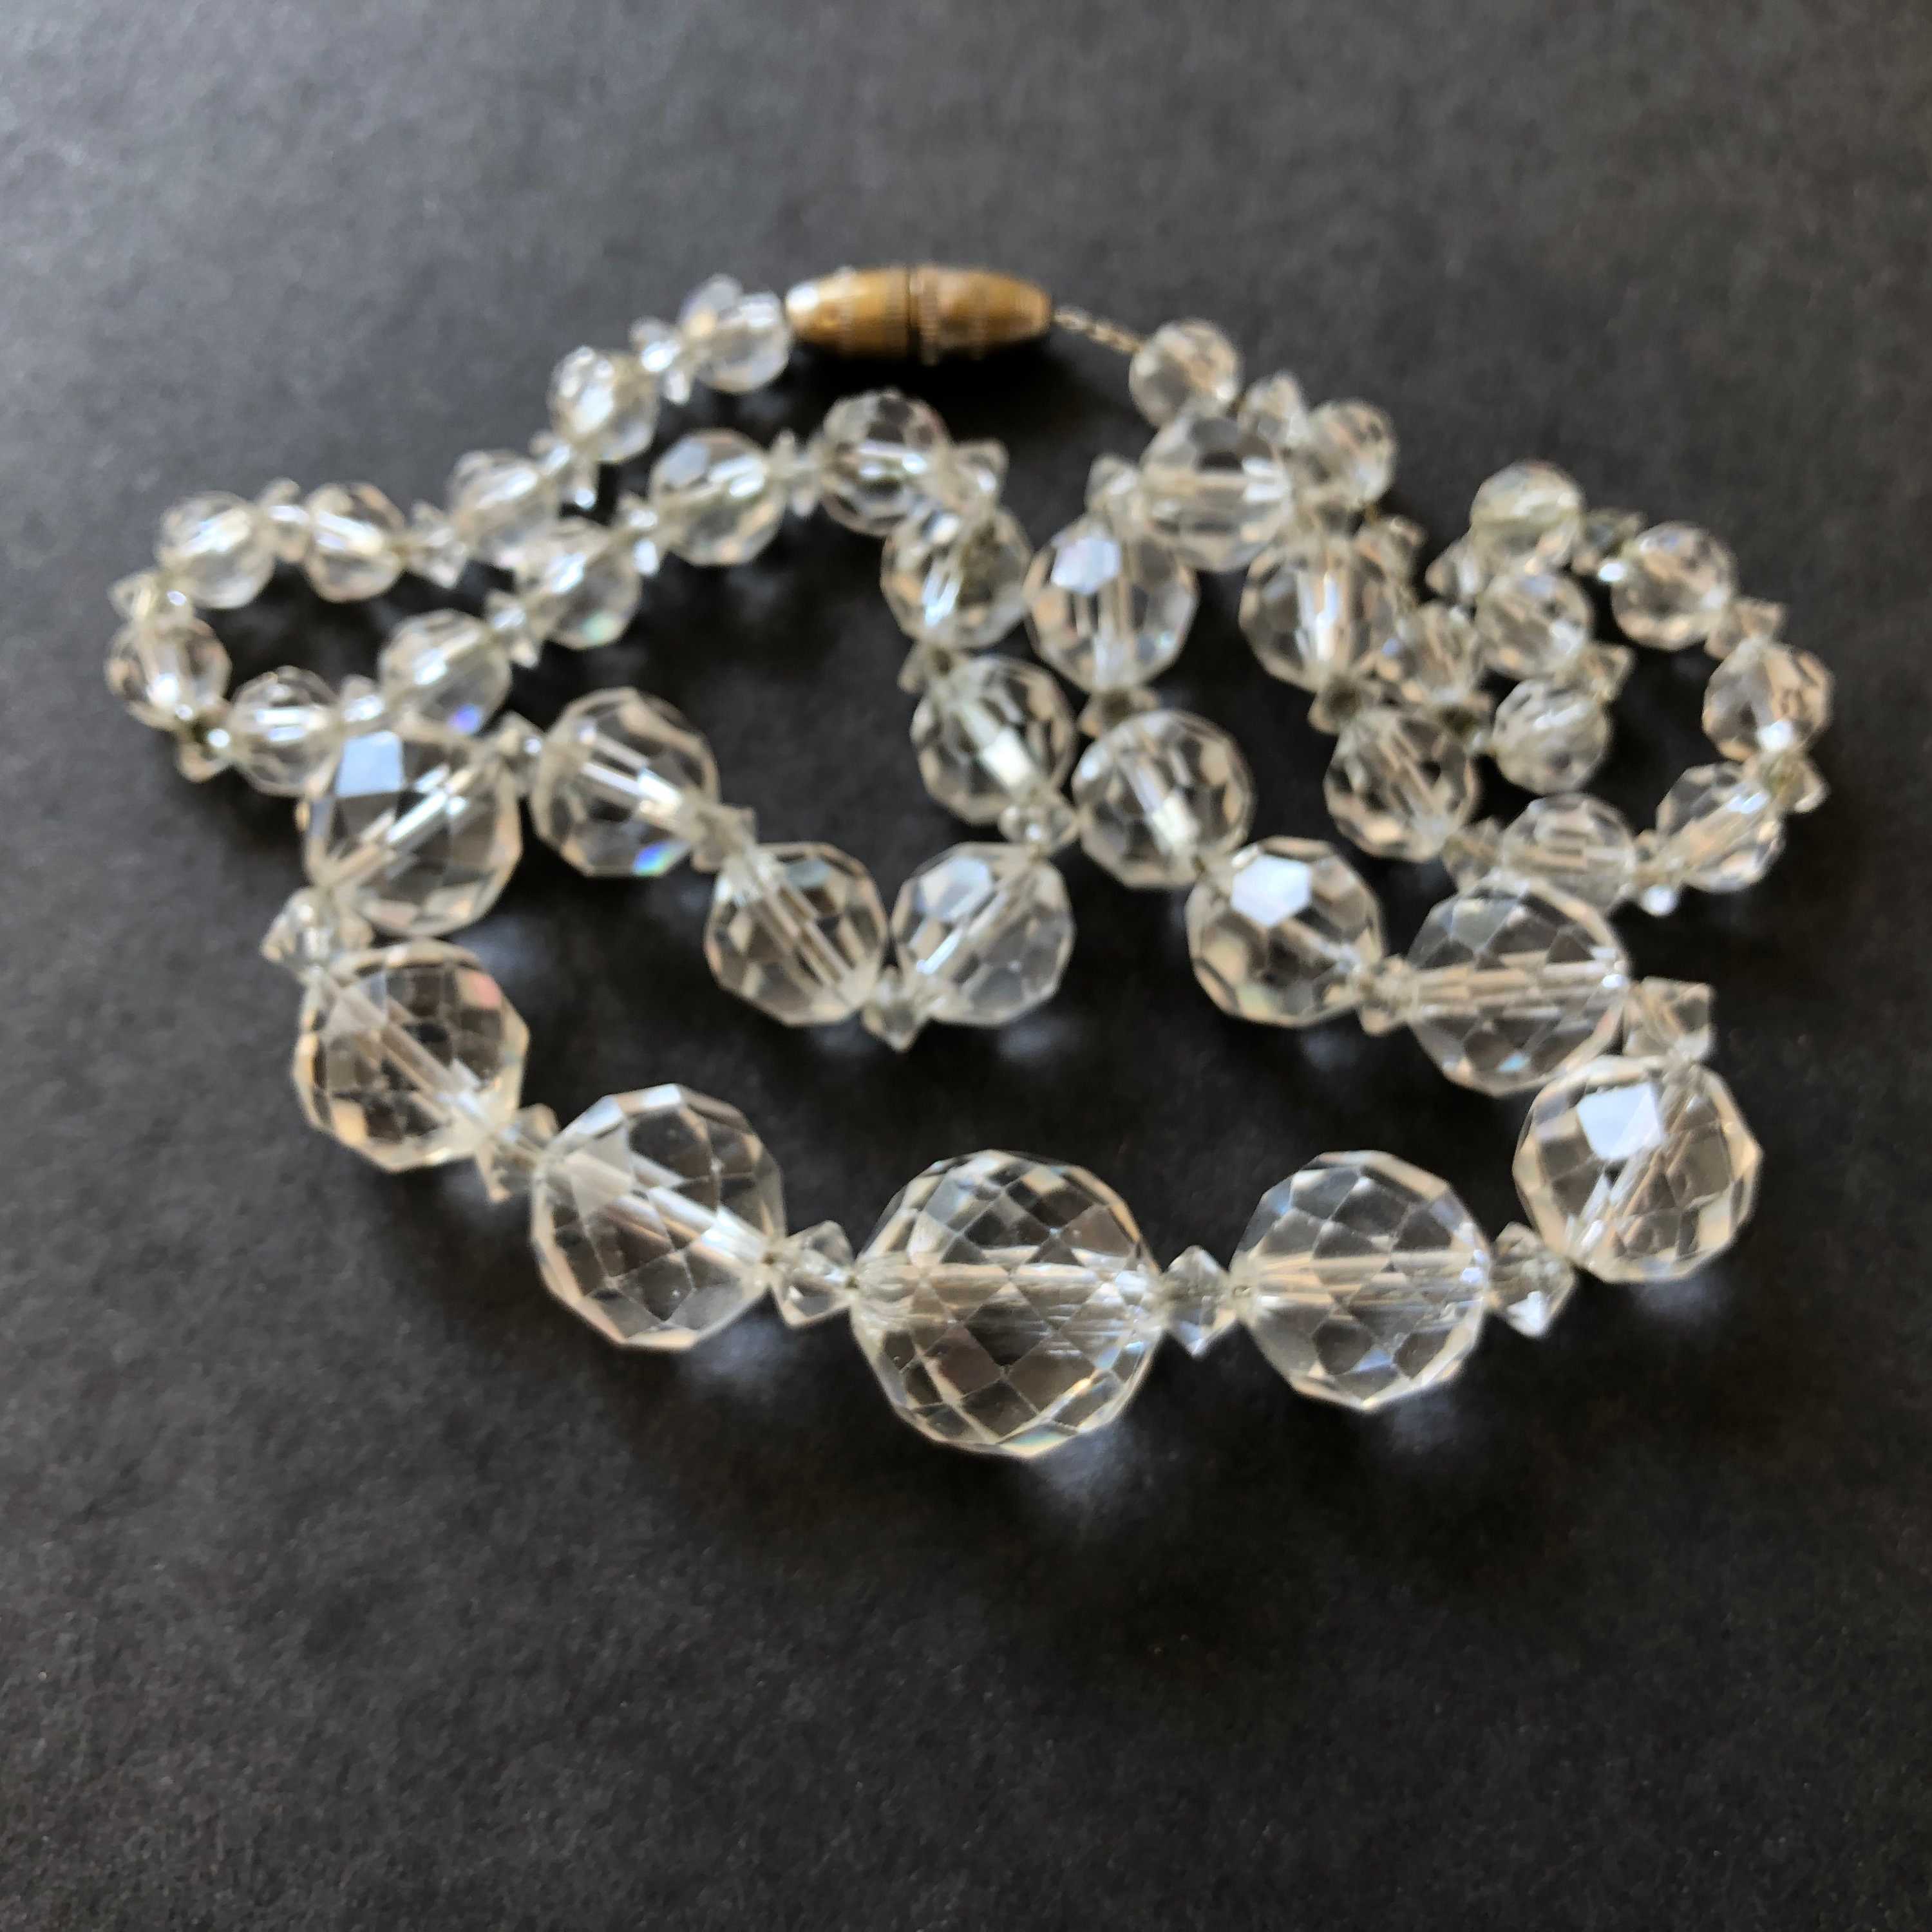 Clear GLASS BEAD NECKLACE 30 Graduated Round Faceted Crystal Beads Antique